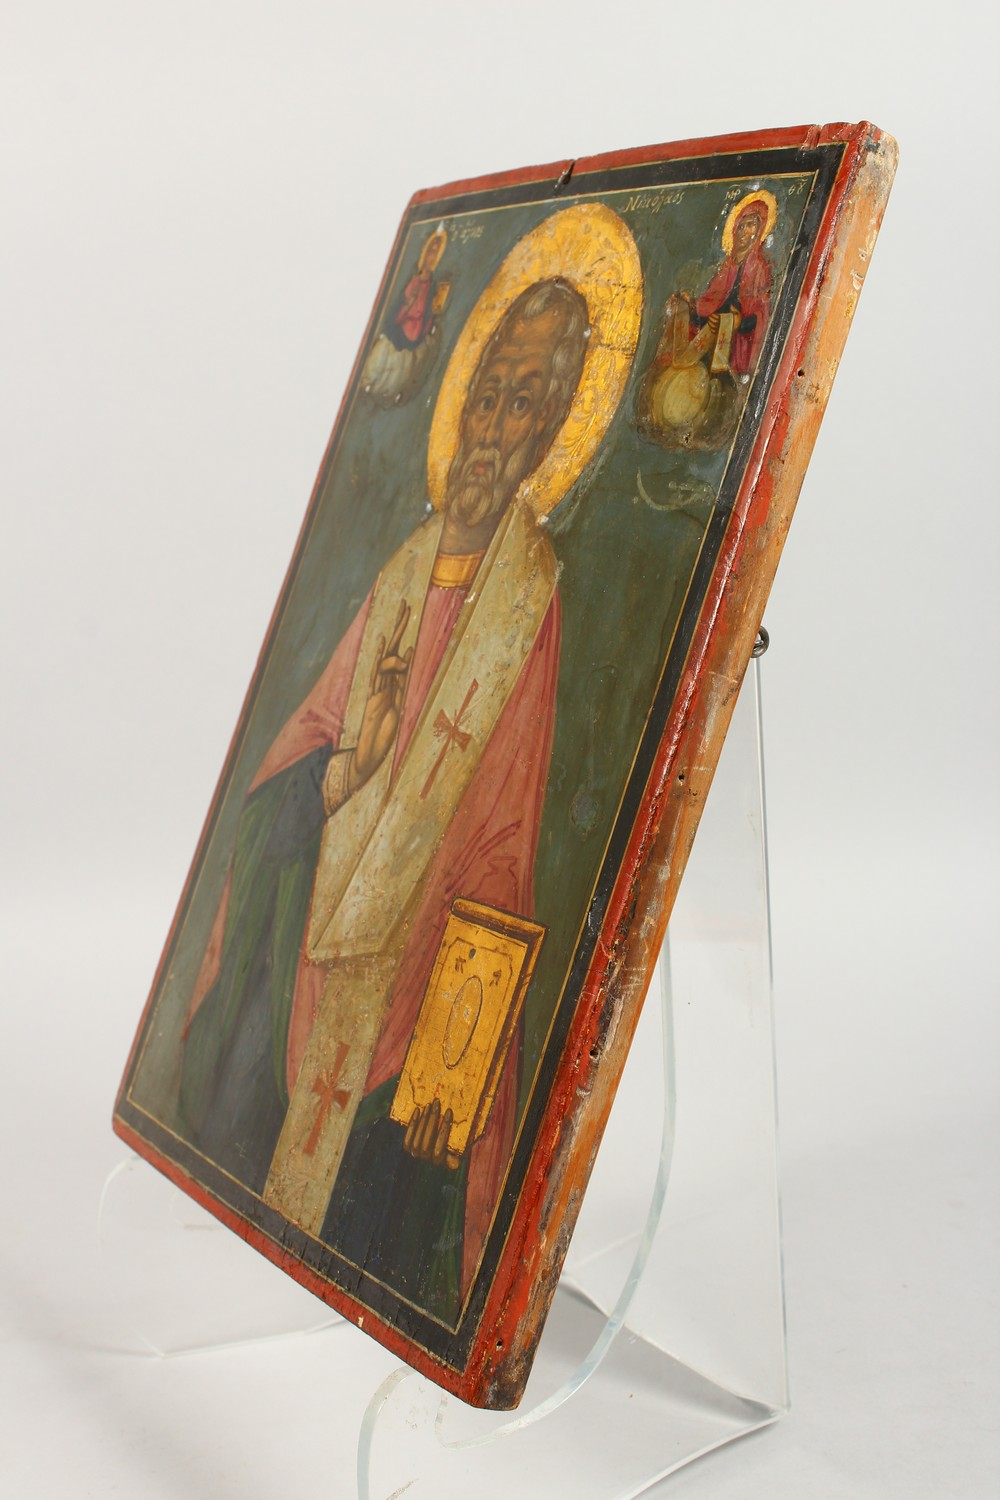 Lot 1712 - AN EARLY RUSSIAN ICON, on a wooden panel. Priest, dated 1853. 14ins x 11ins.